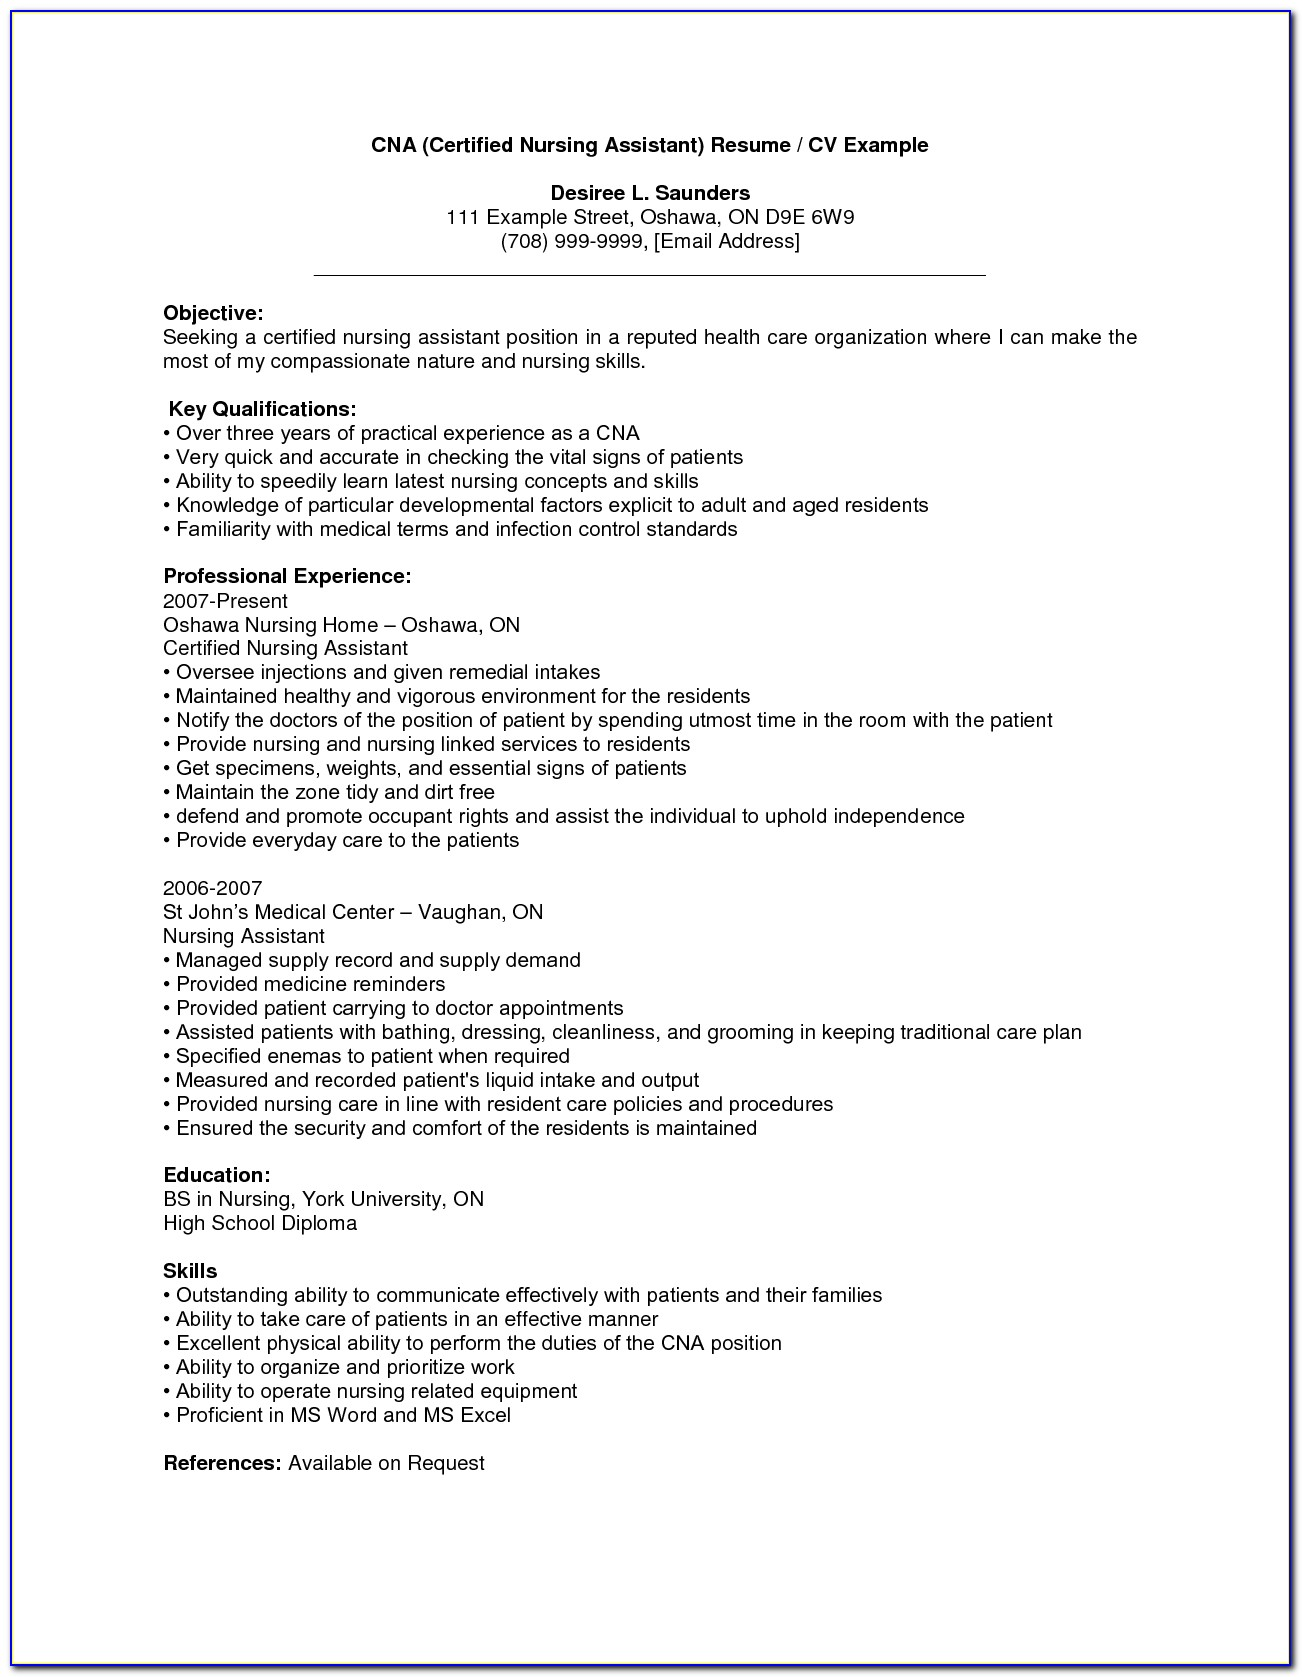 Sample Resume For Nursing Assistant With No Experience Cna Resume Pertaining To Cna Resume No Experience Template